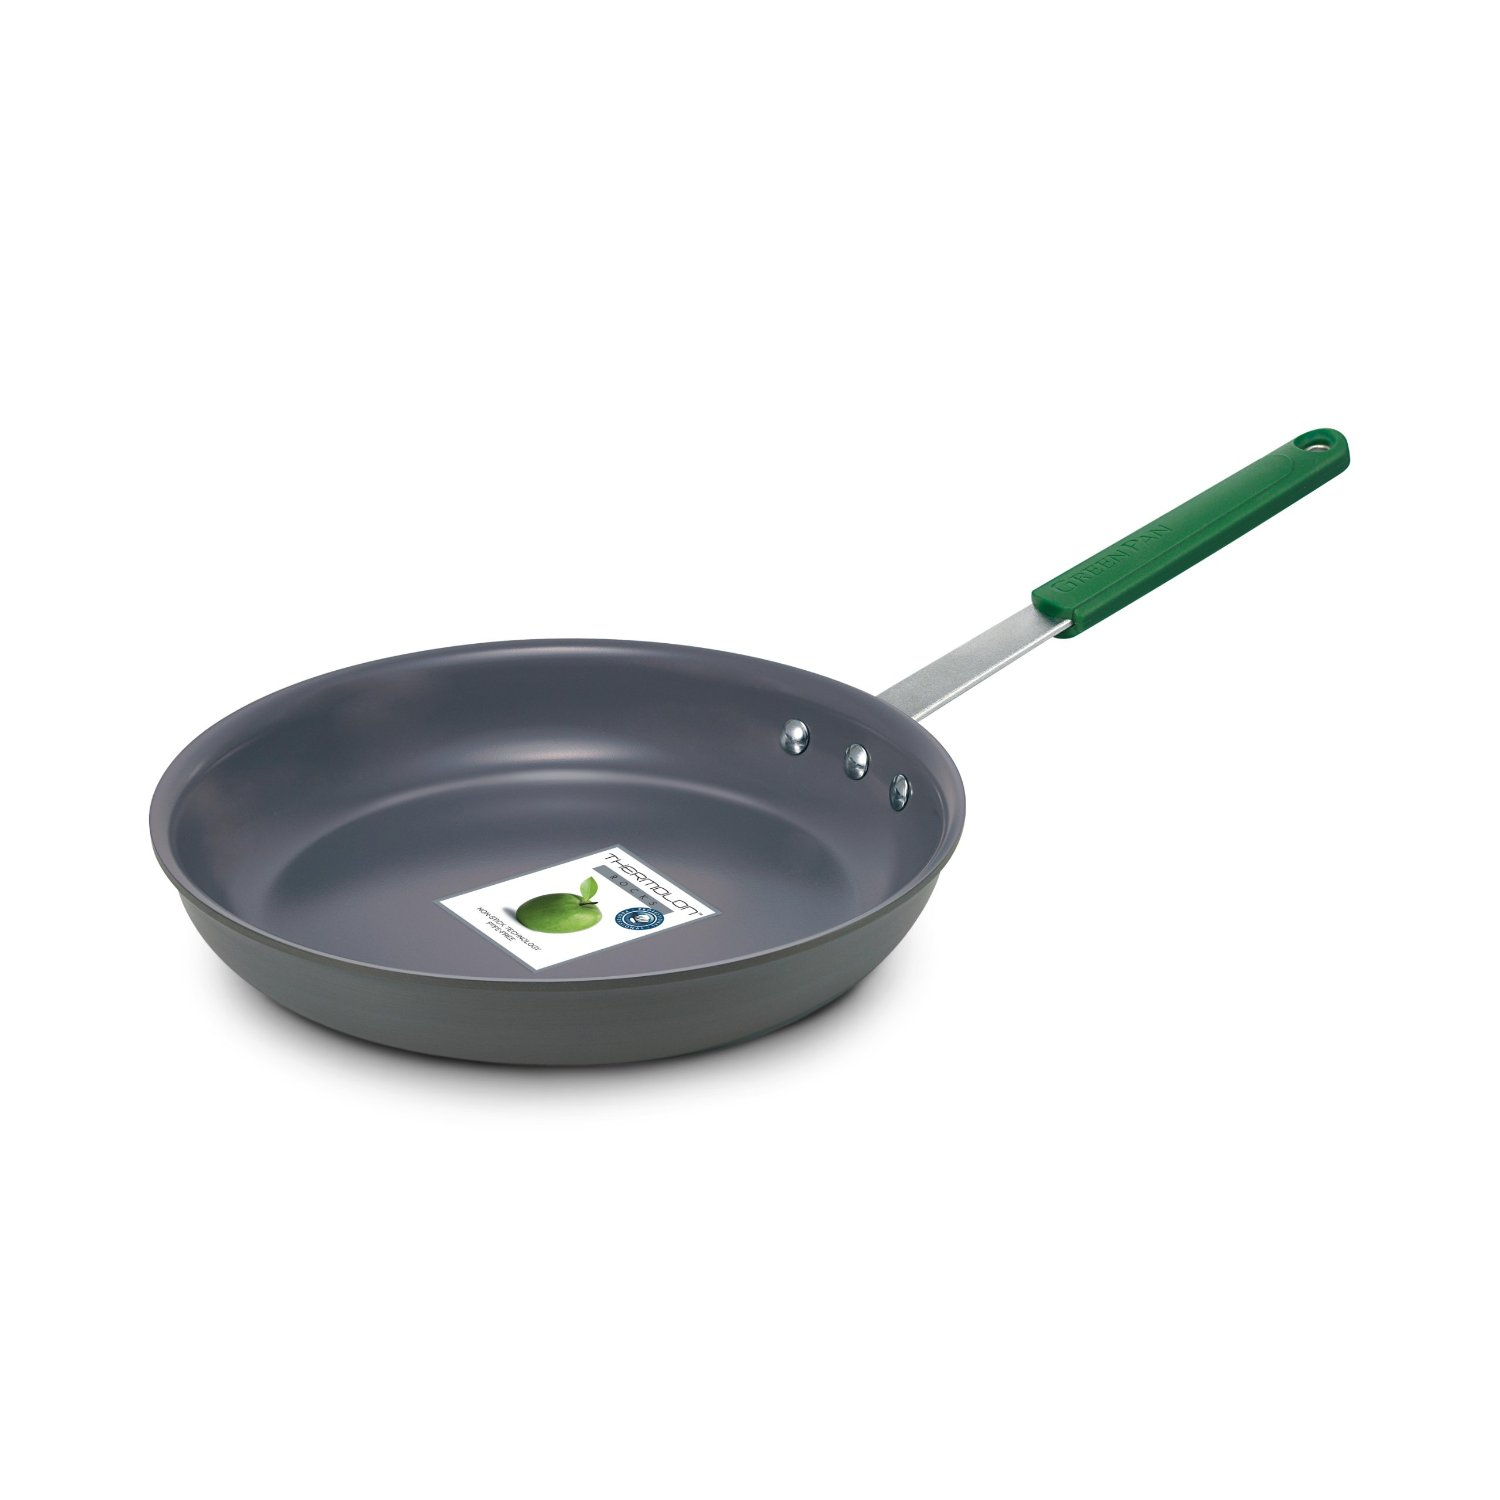 GreenPan Rotterdam Thermolon Non Stick Open Fry Pan Review